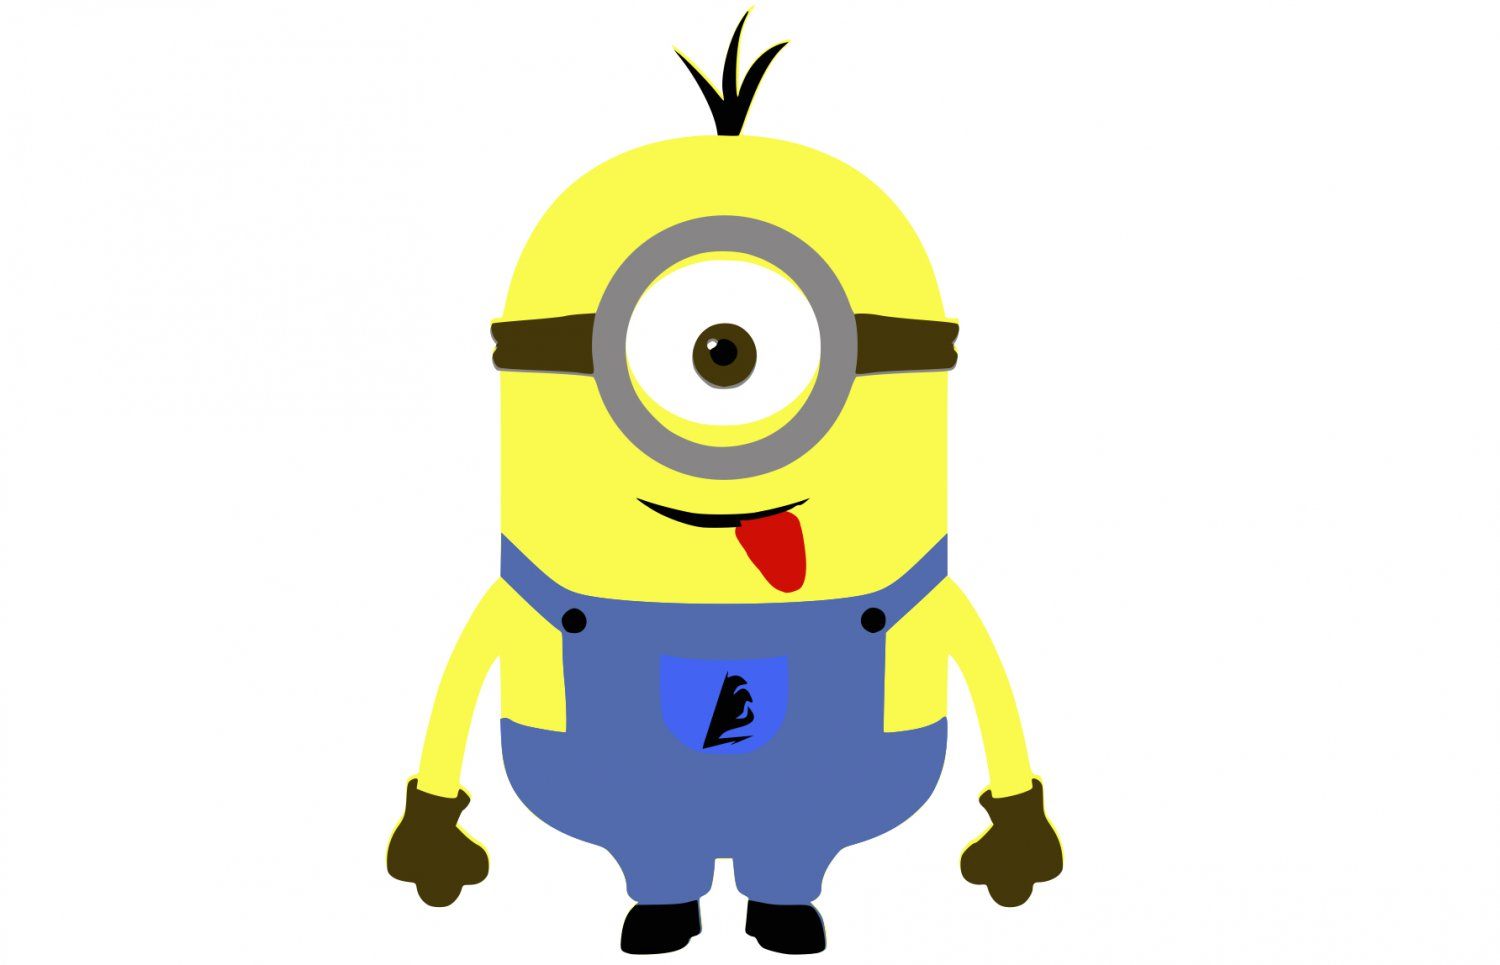 Svg Eps Dxf Png Pdf: Yellow Minion SVG,PNG,EPS,DXF,JPG,and PDF Files